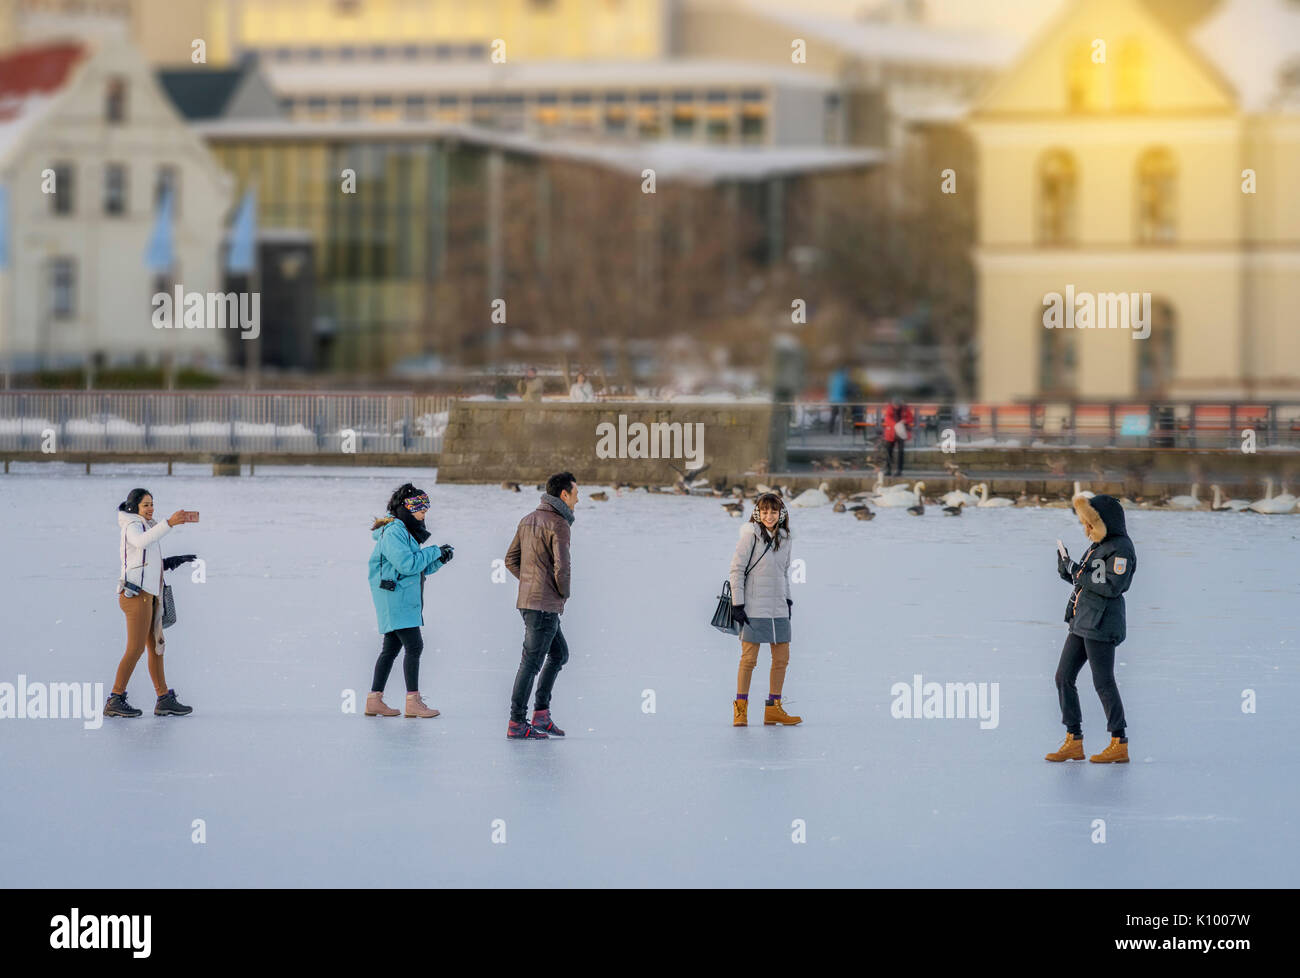 People walking on the frozen pond in Reykjavik, Iceland Stock Photo